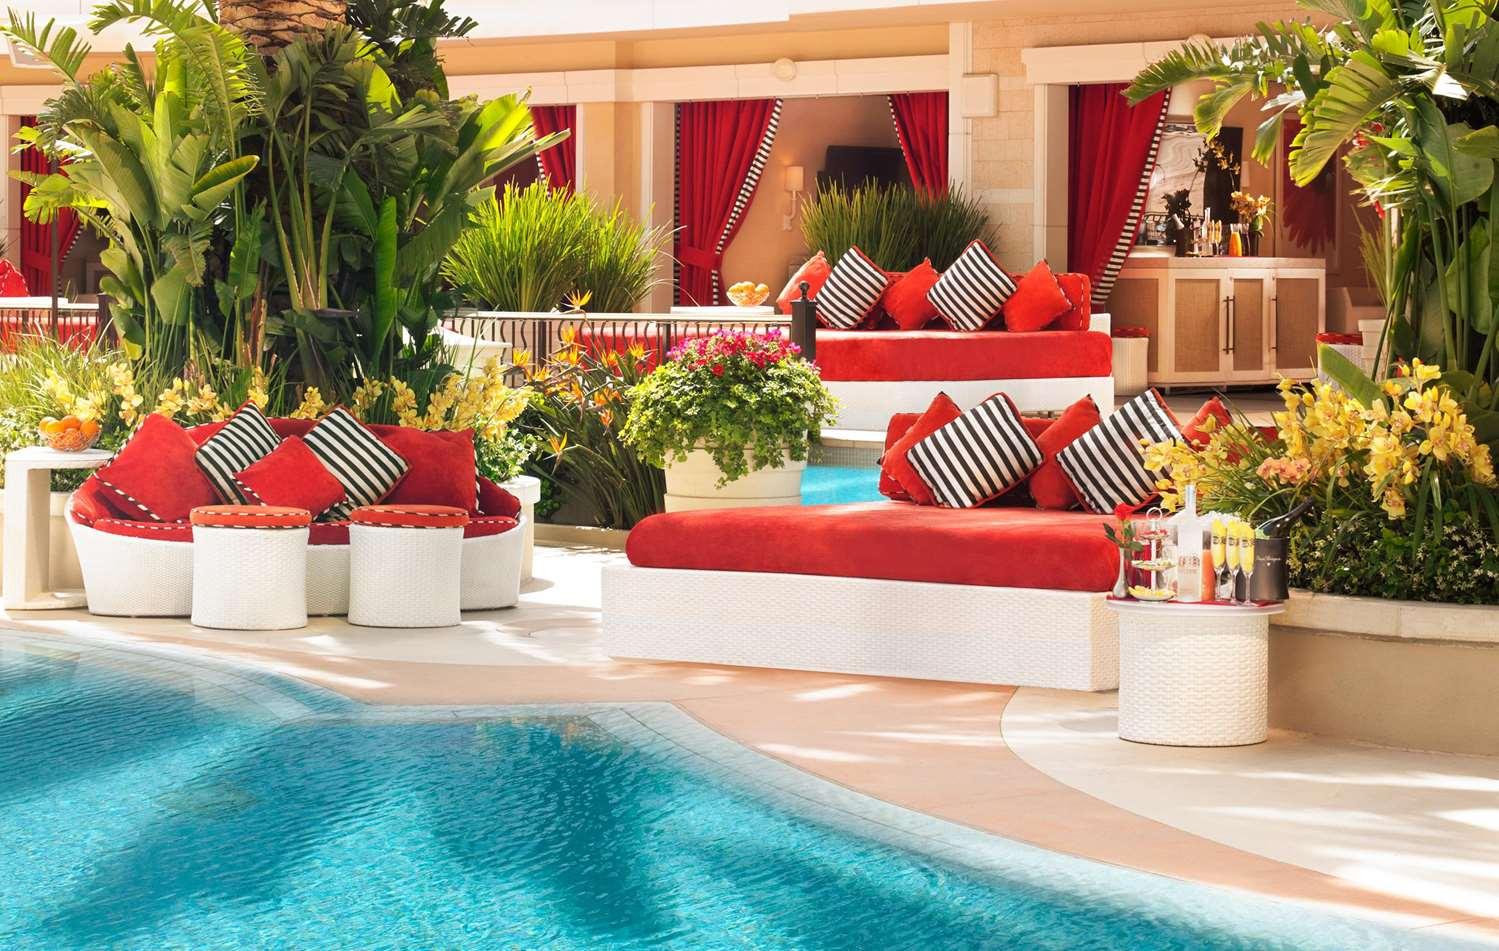 Pool - Wynn Resort & Encore Resort Las Vegas